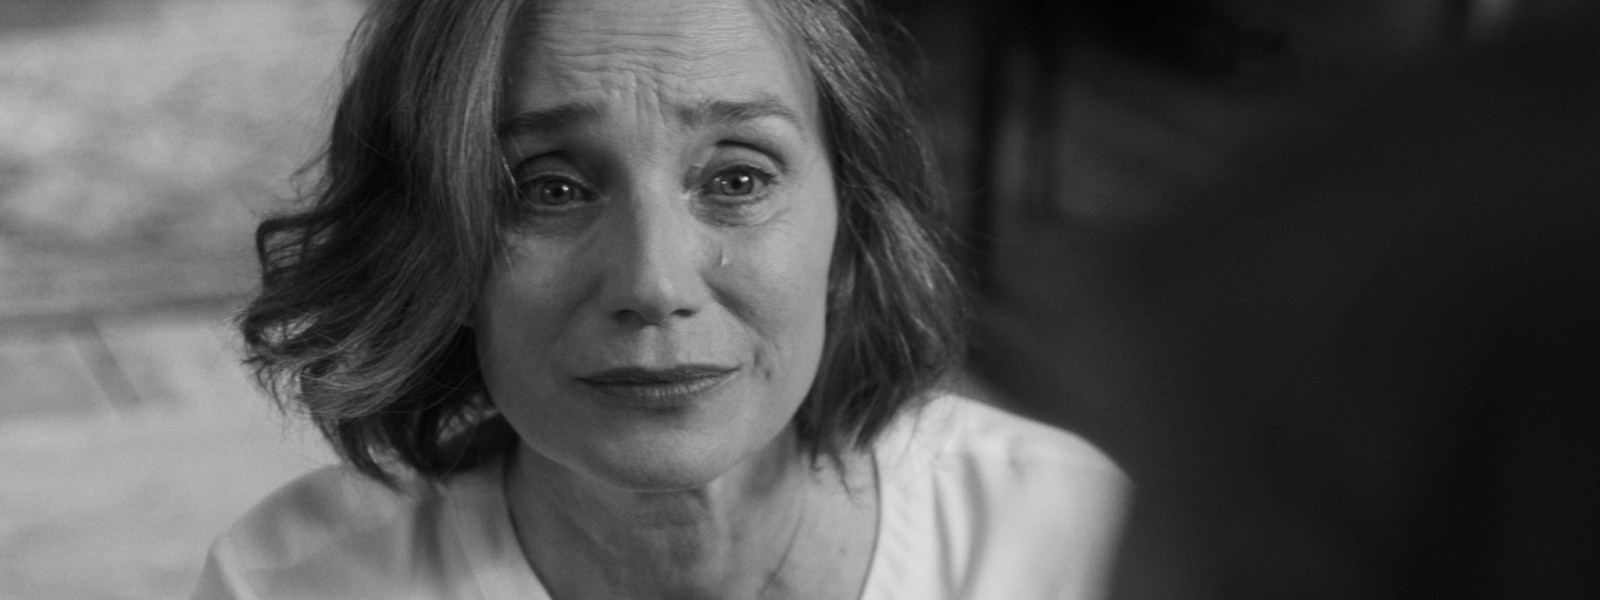 kristin scott thomas in the party - black and white image.